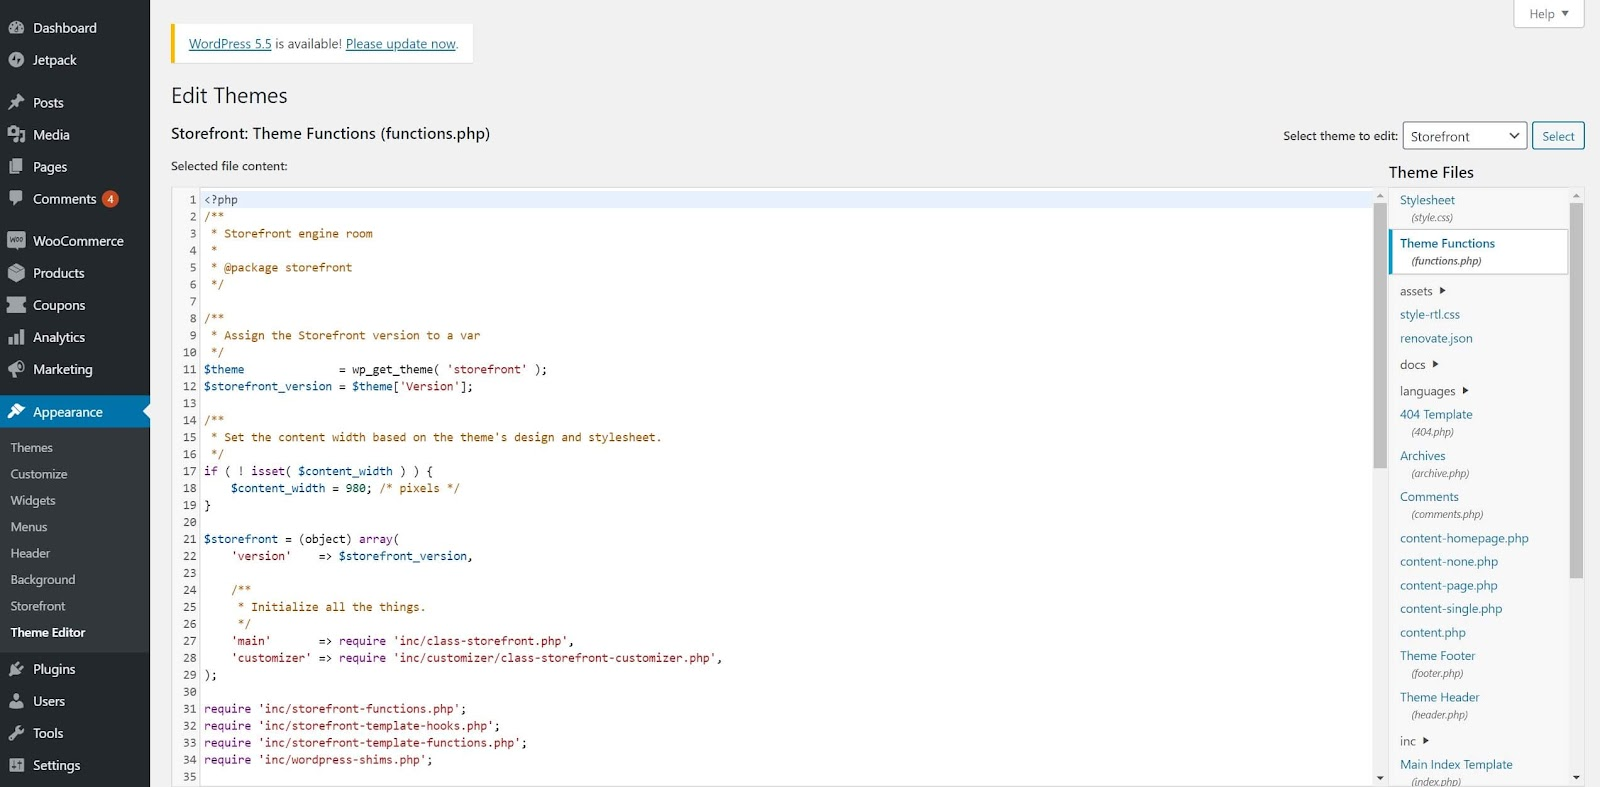 Screenshot showing how to add code to functions.php in WordPress theme editor